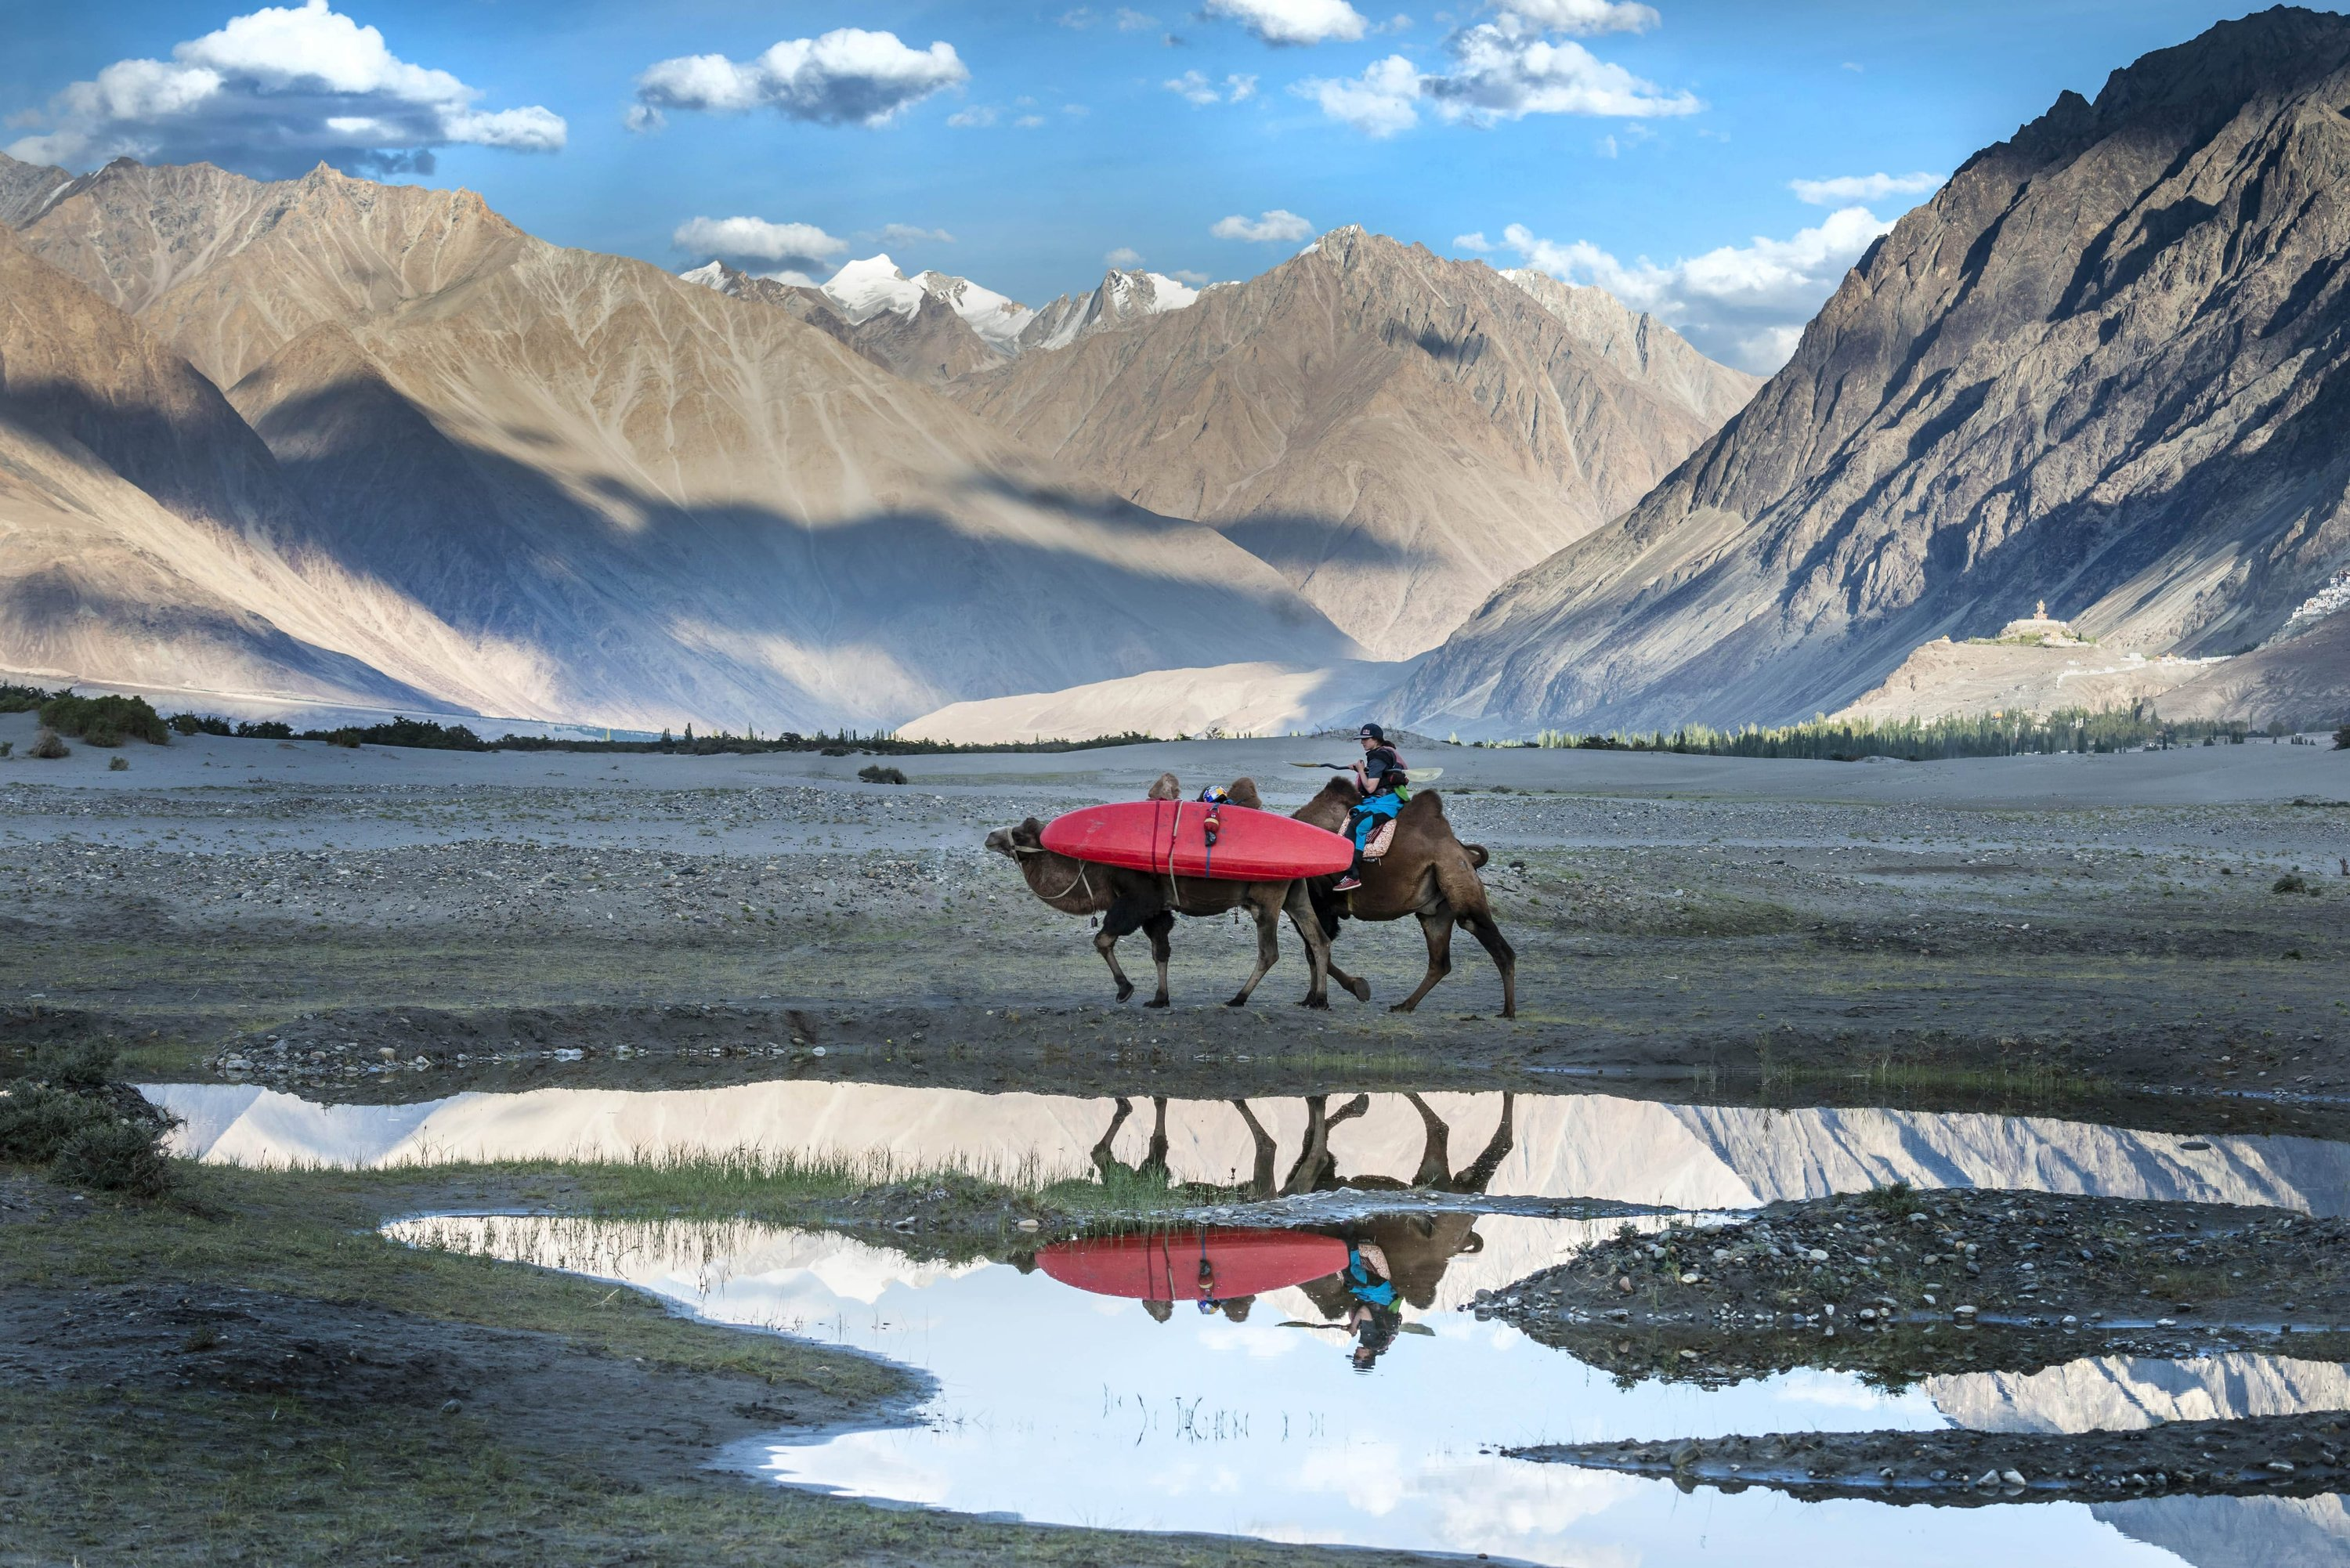 Image: Nouria Newman riding a camel through a valley in Ladakh with another camel carrying her kayak